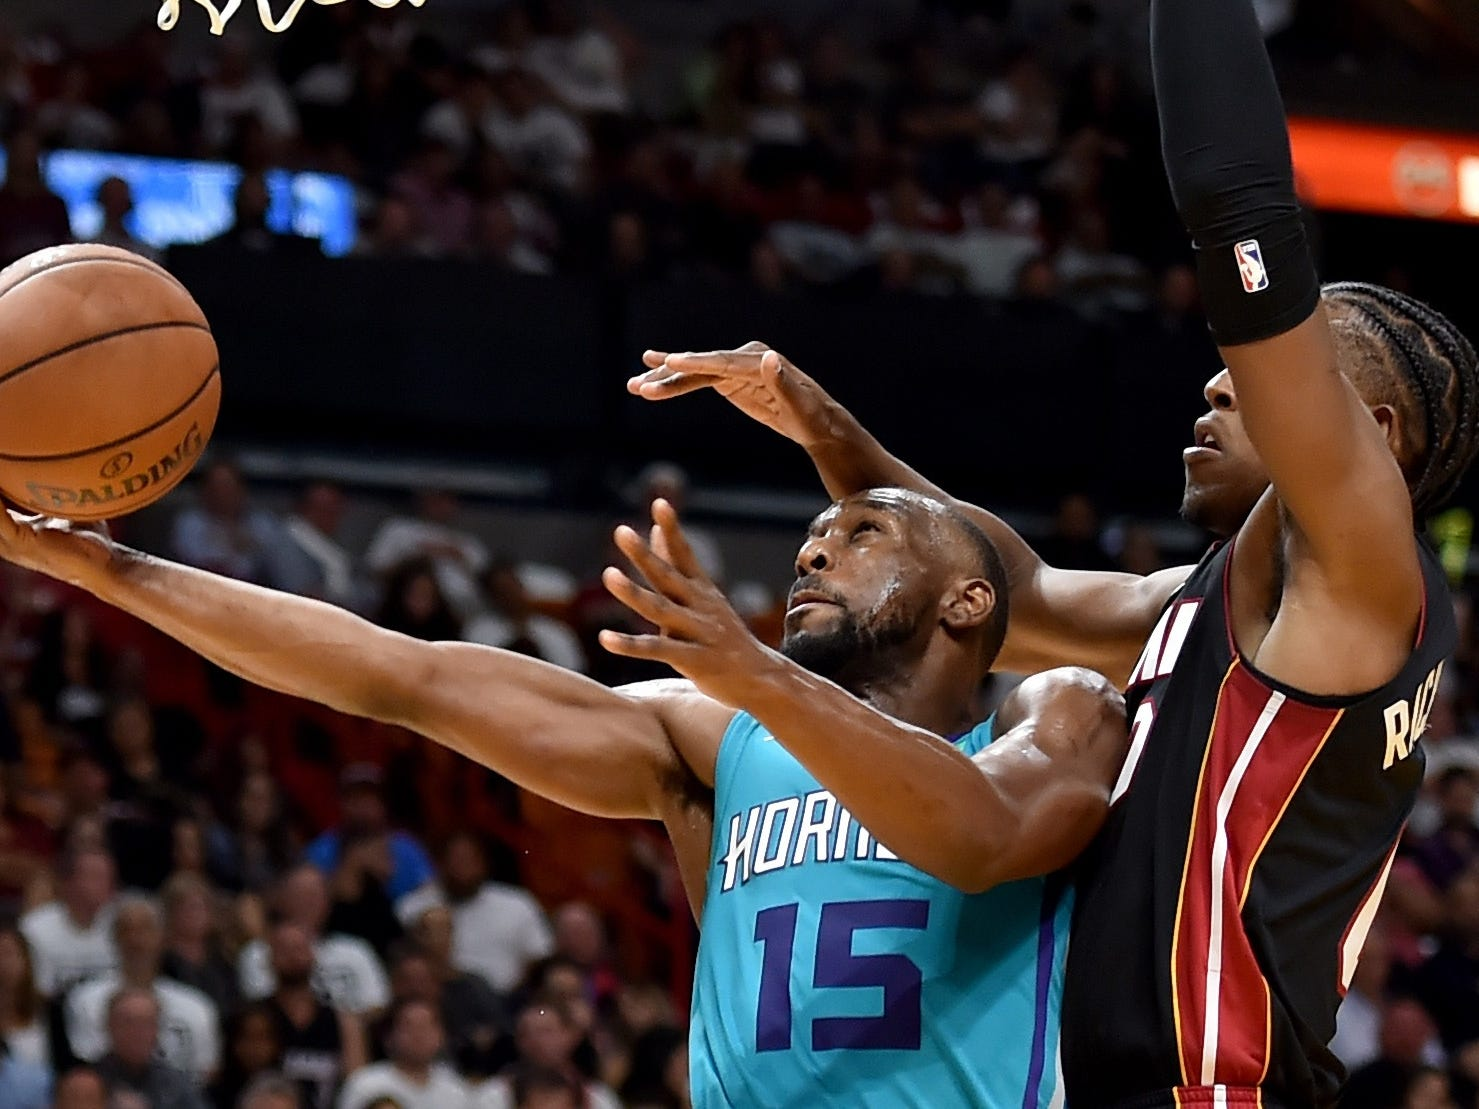 Oct. 20: Hornets guard Kemba Walker (15) drives to the hoop against Heat forward Josh Richardson (0).